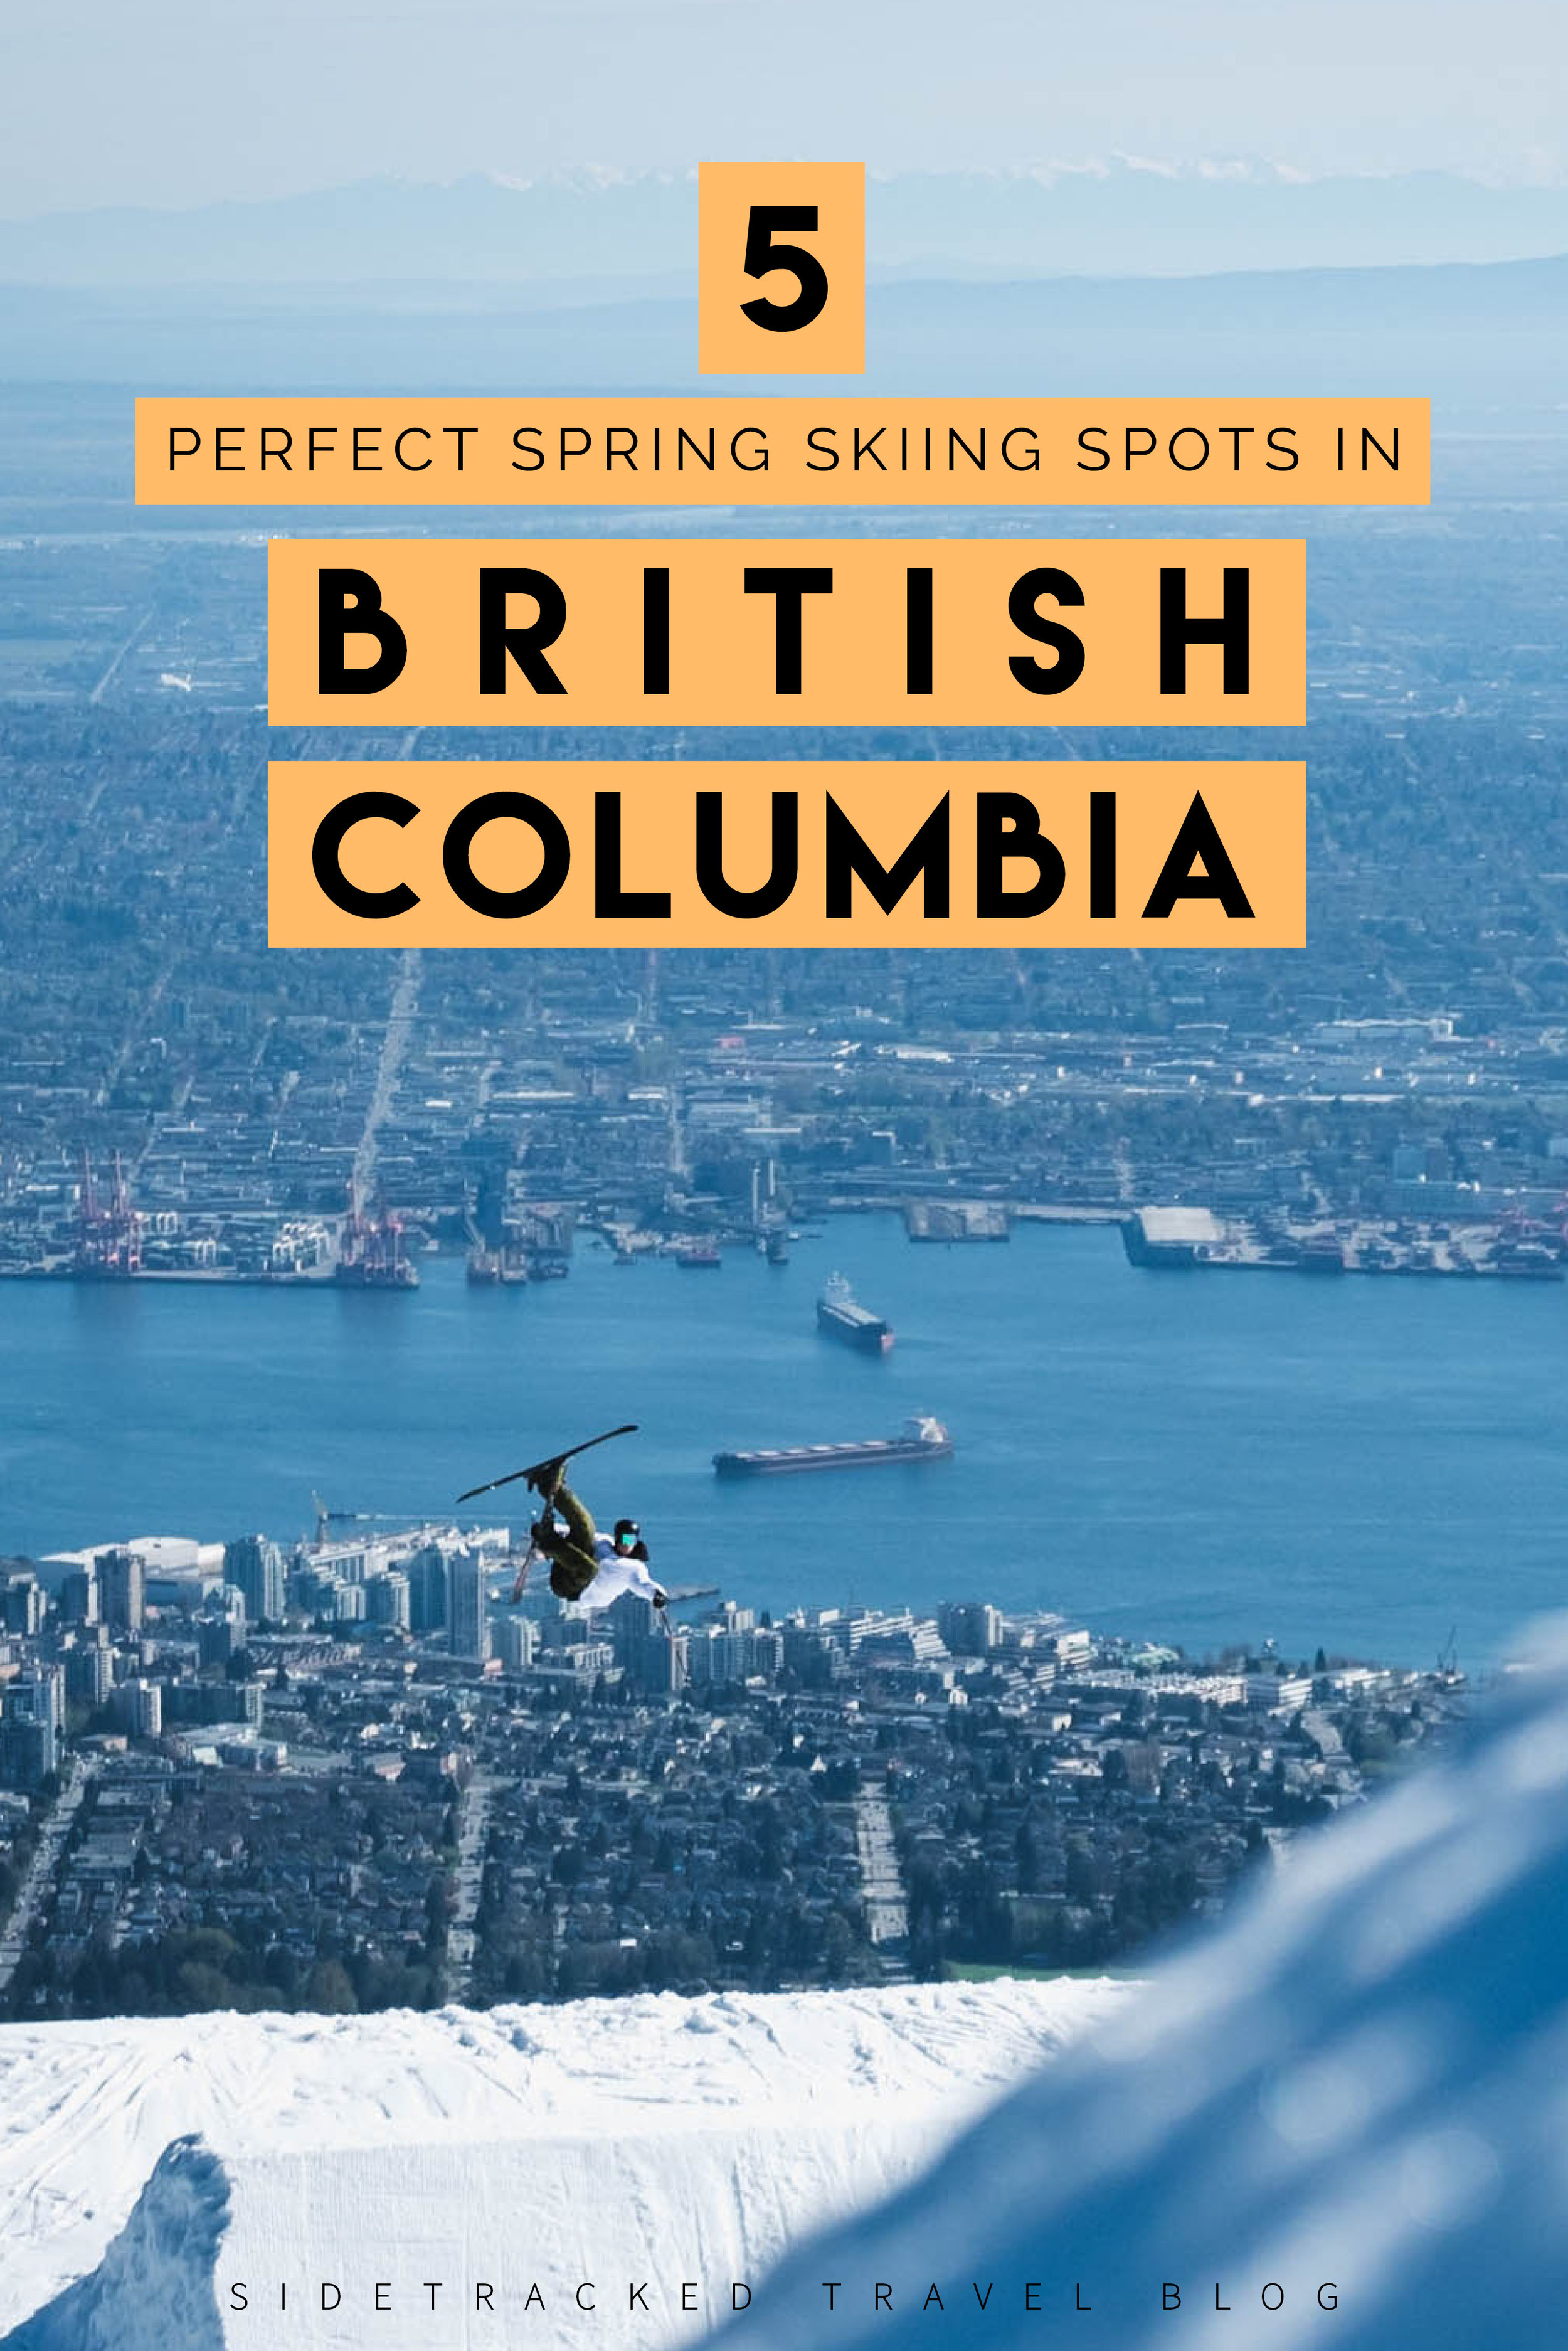 Whether you're headed out for a week-long ski adventure or a quick weekend getaway into the mountains, here are five perfect spring skiing spots in British Columbia for you to discover!